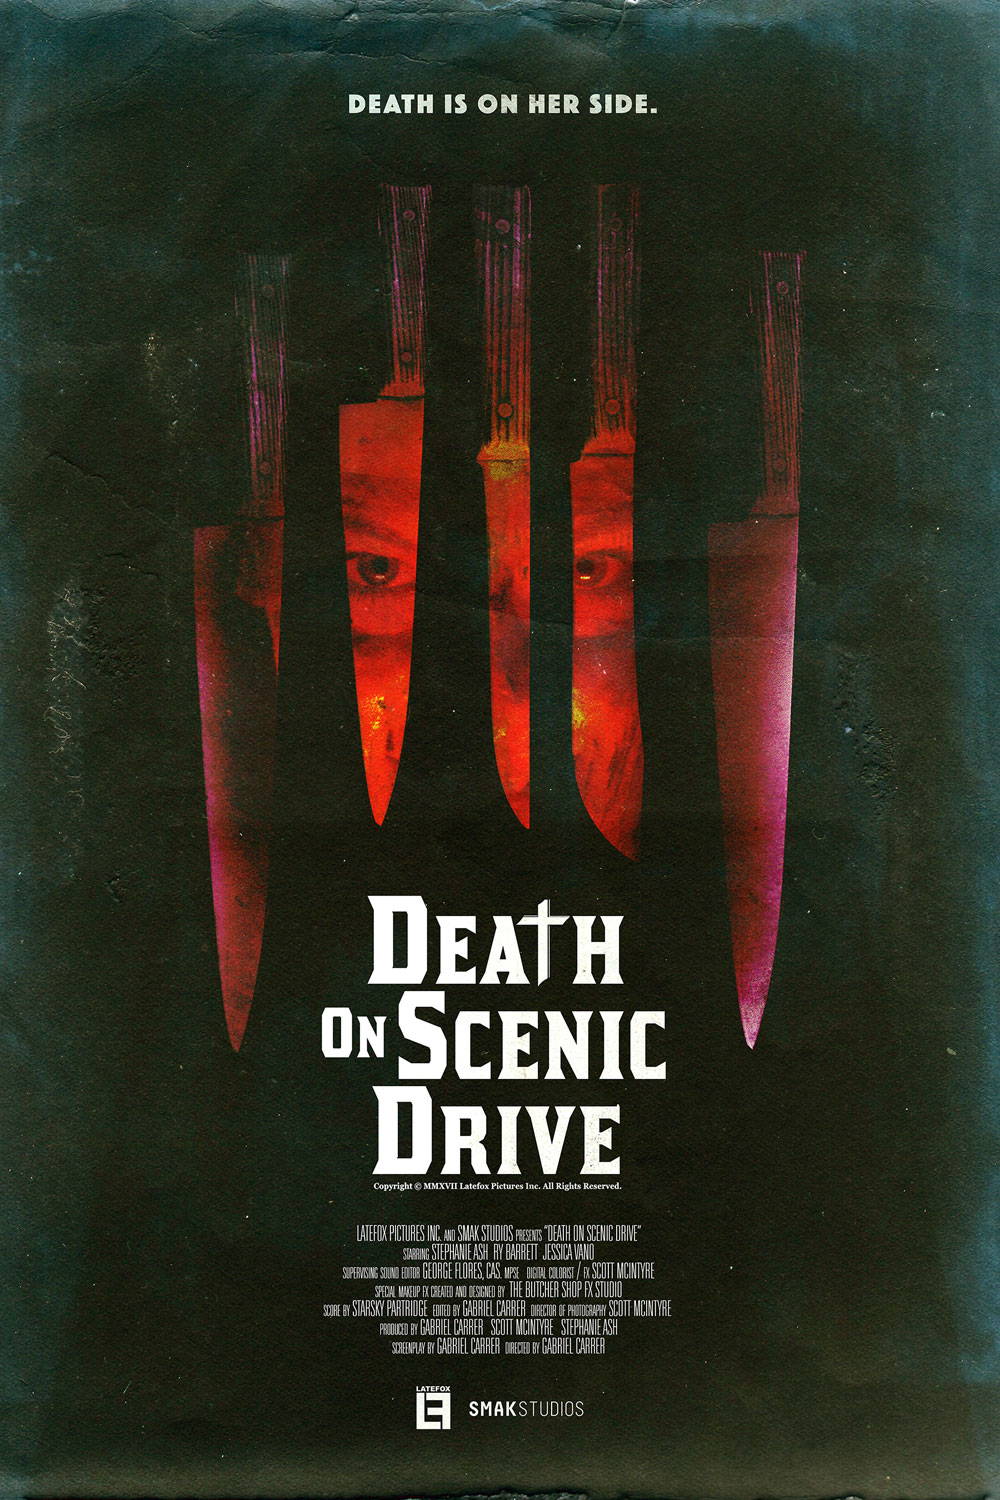 DEATH 24X36 03 - Exclusive Early Look at Three New Death on Scenic Drive Posters